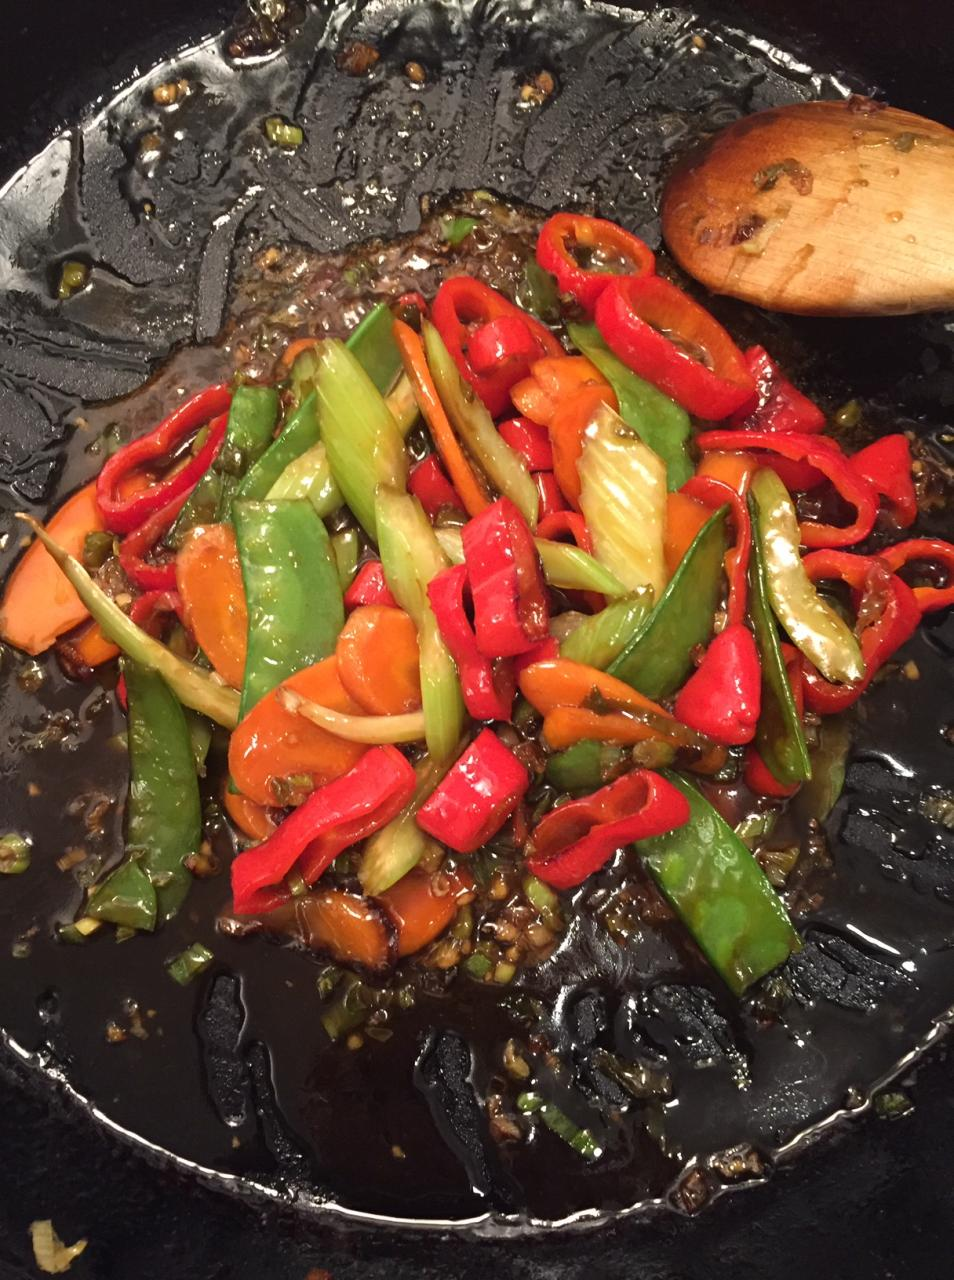 Sweet 'n Spicy Stir Fry Sauce